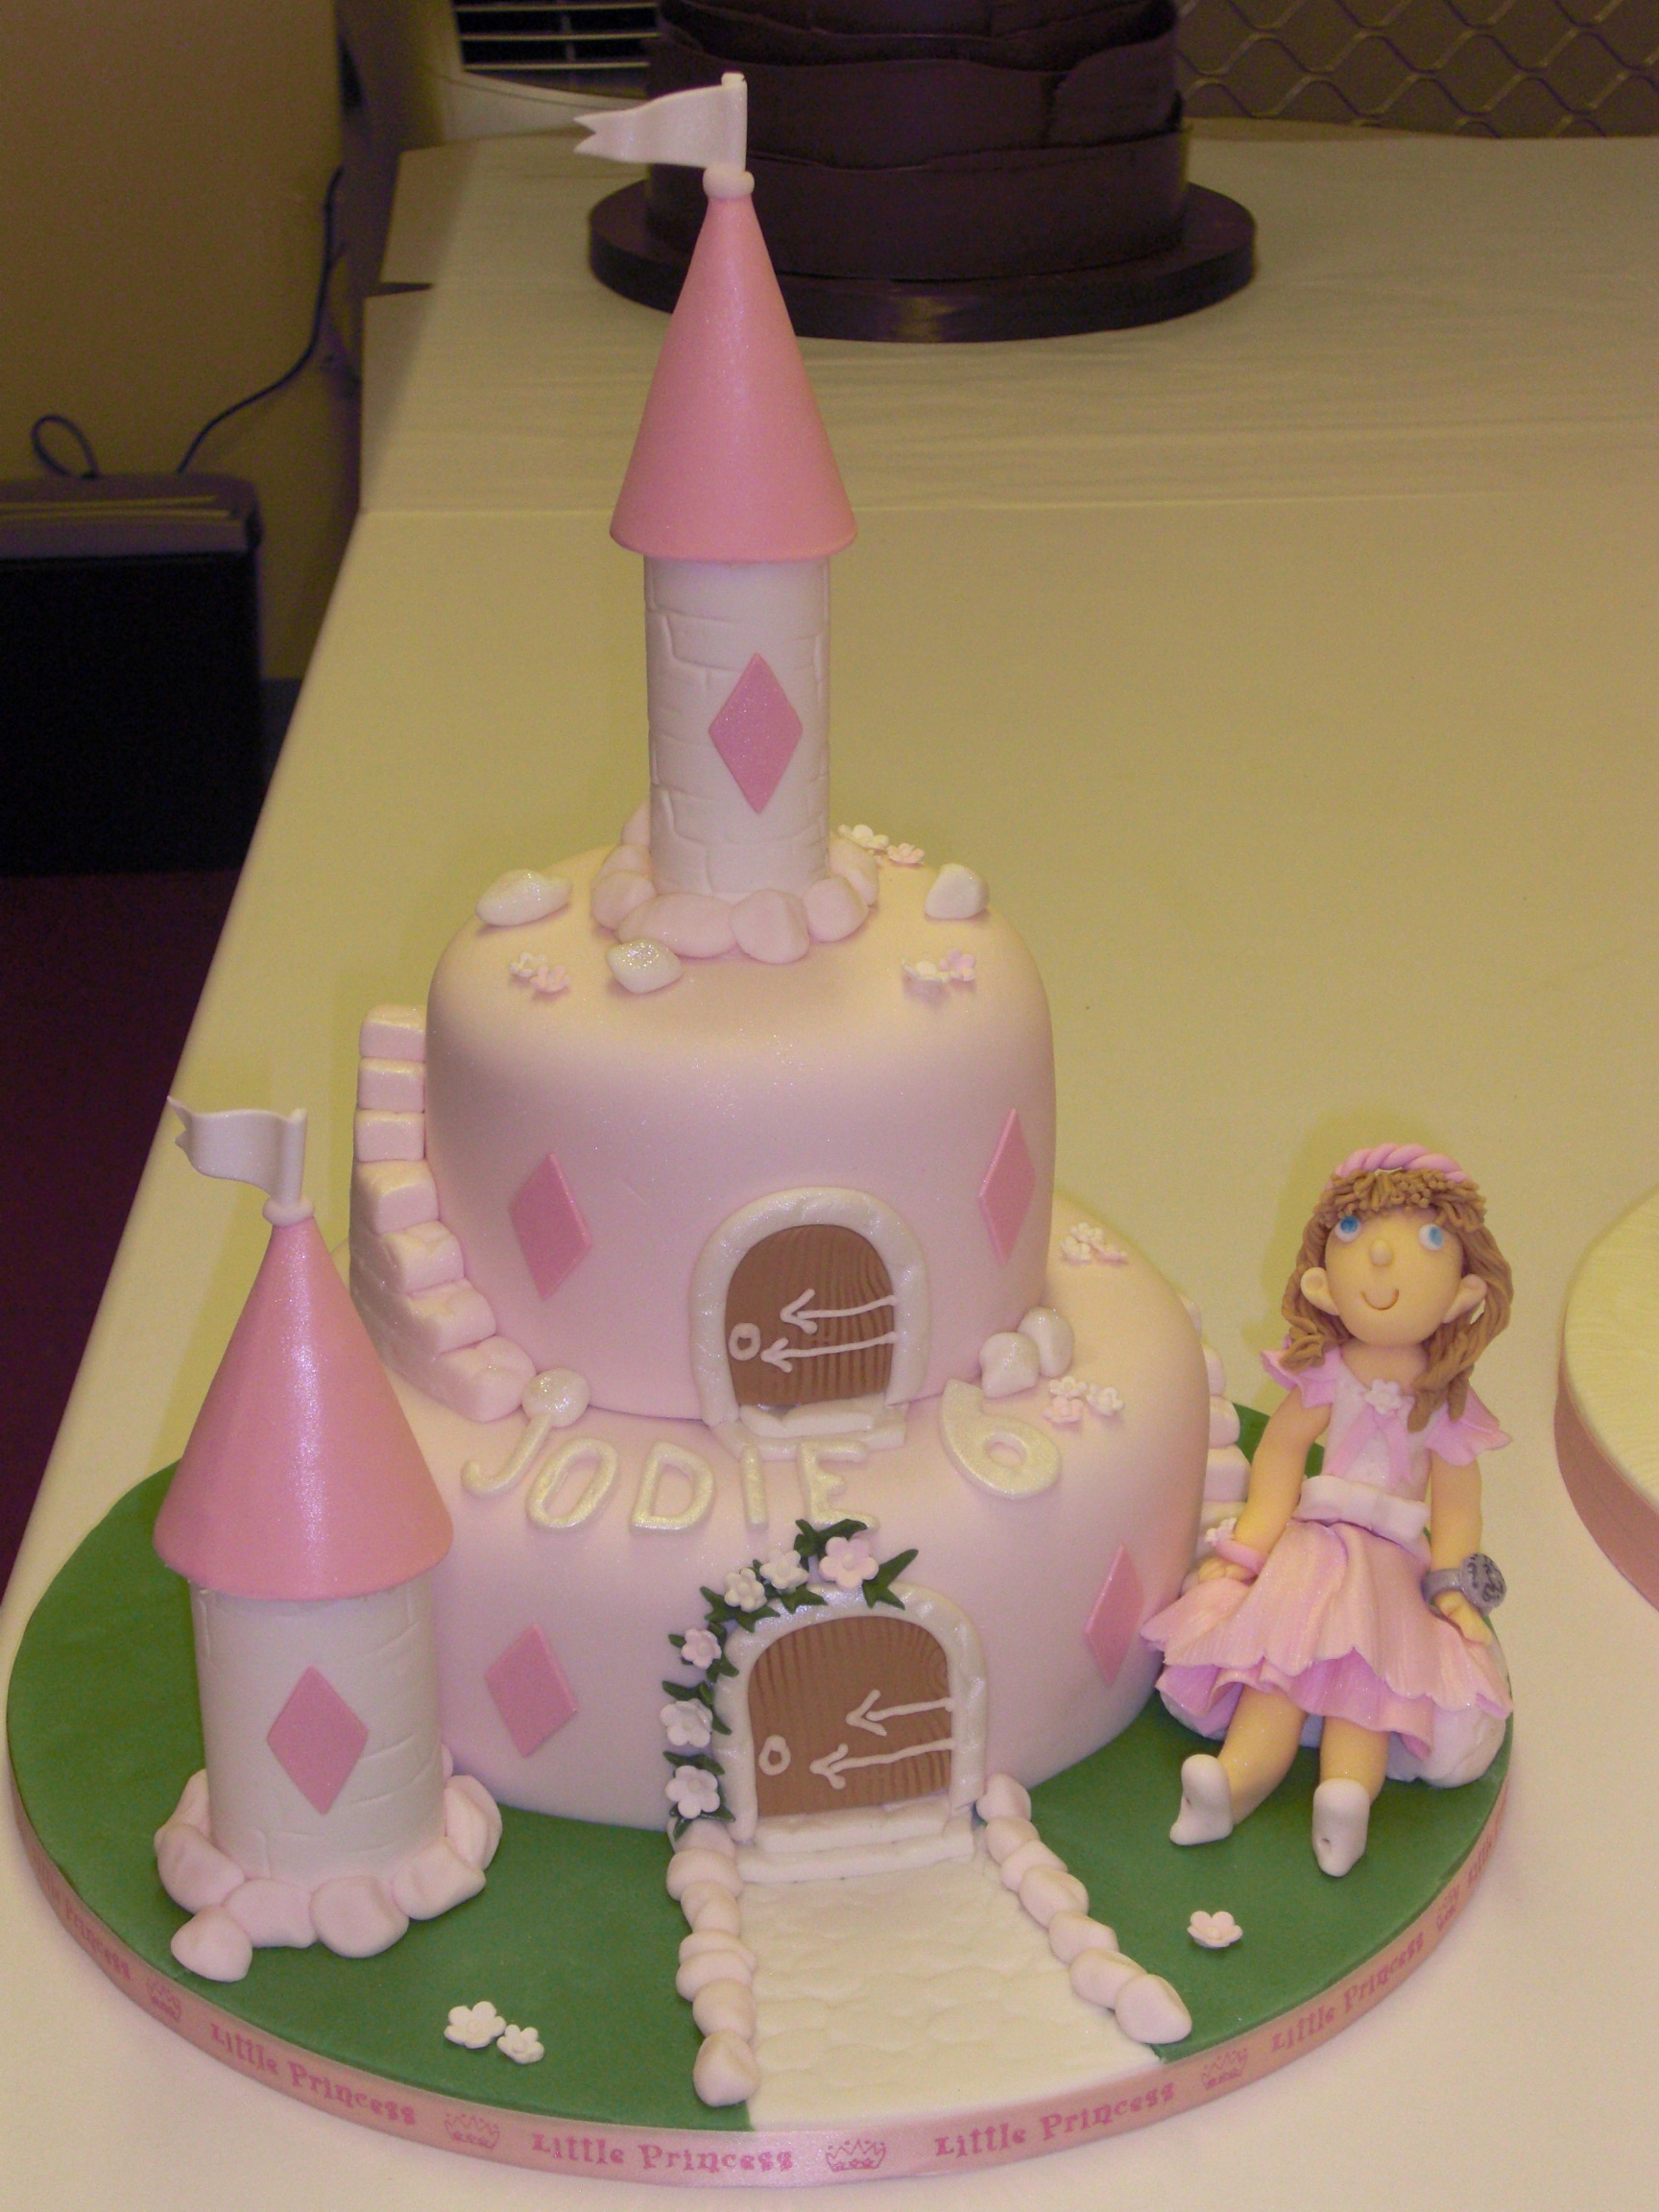 Birthday Cakes   Jenny s Cake Blog   Wedding cakes and ...